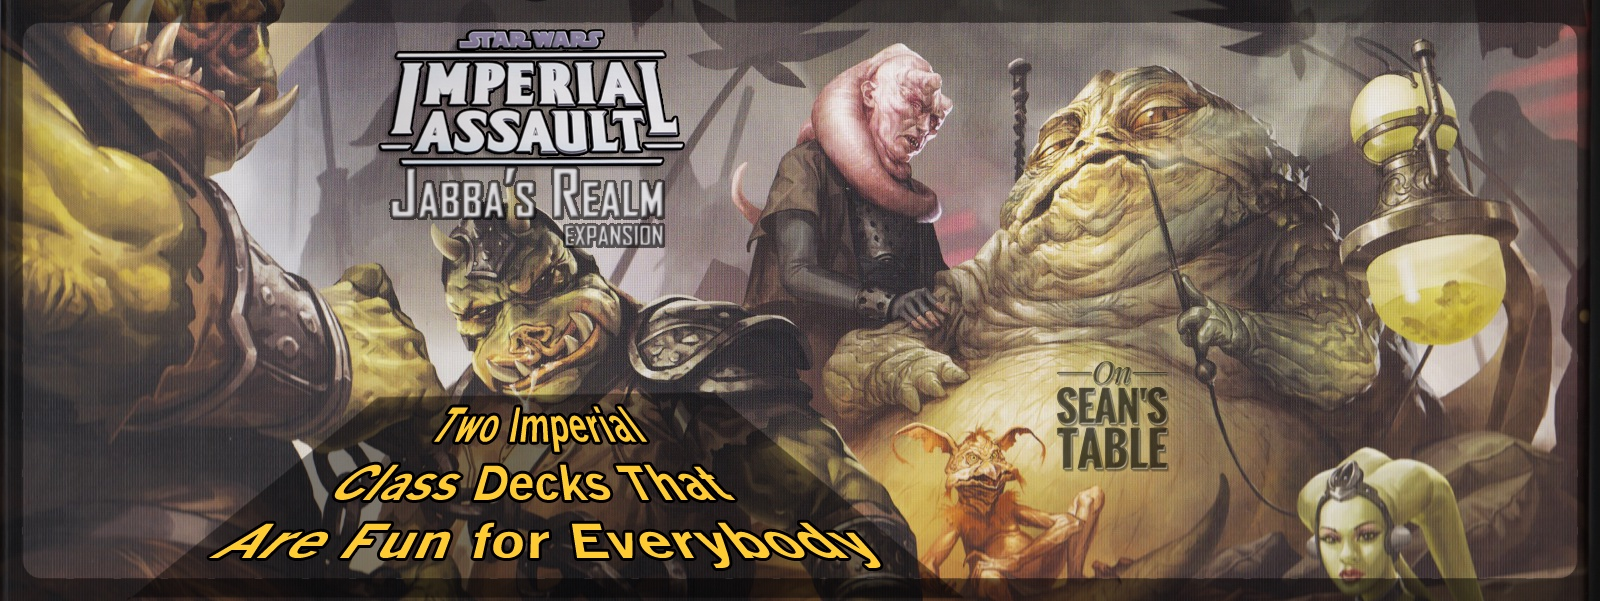 Imperial Assault Jabba's Realm Featured Image